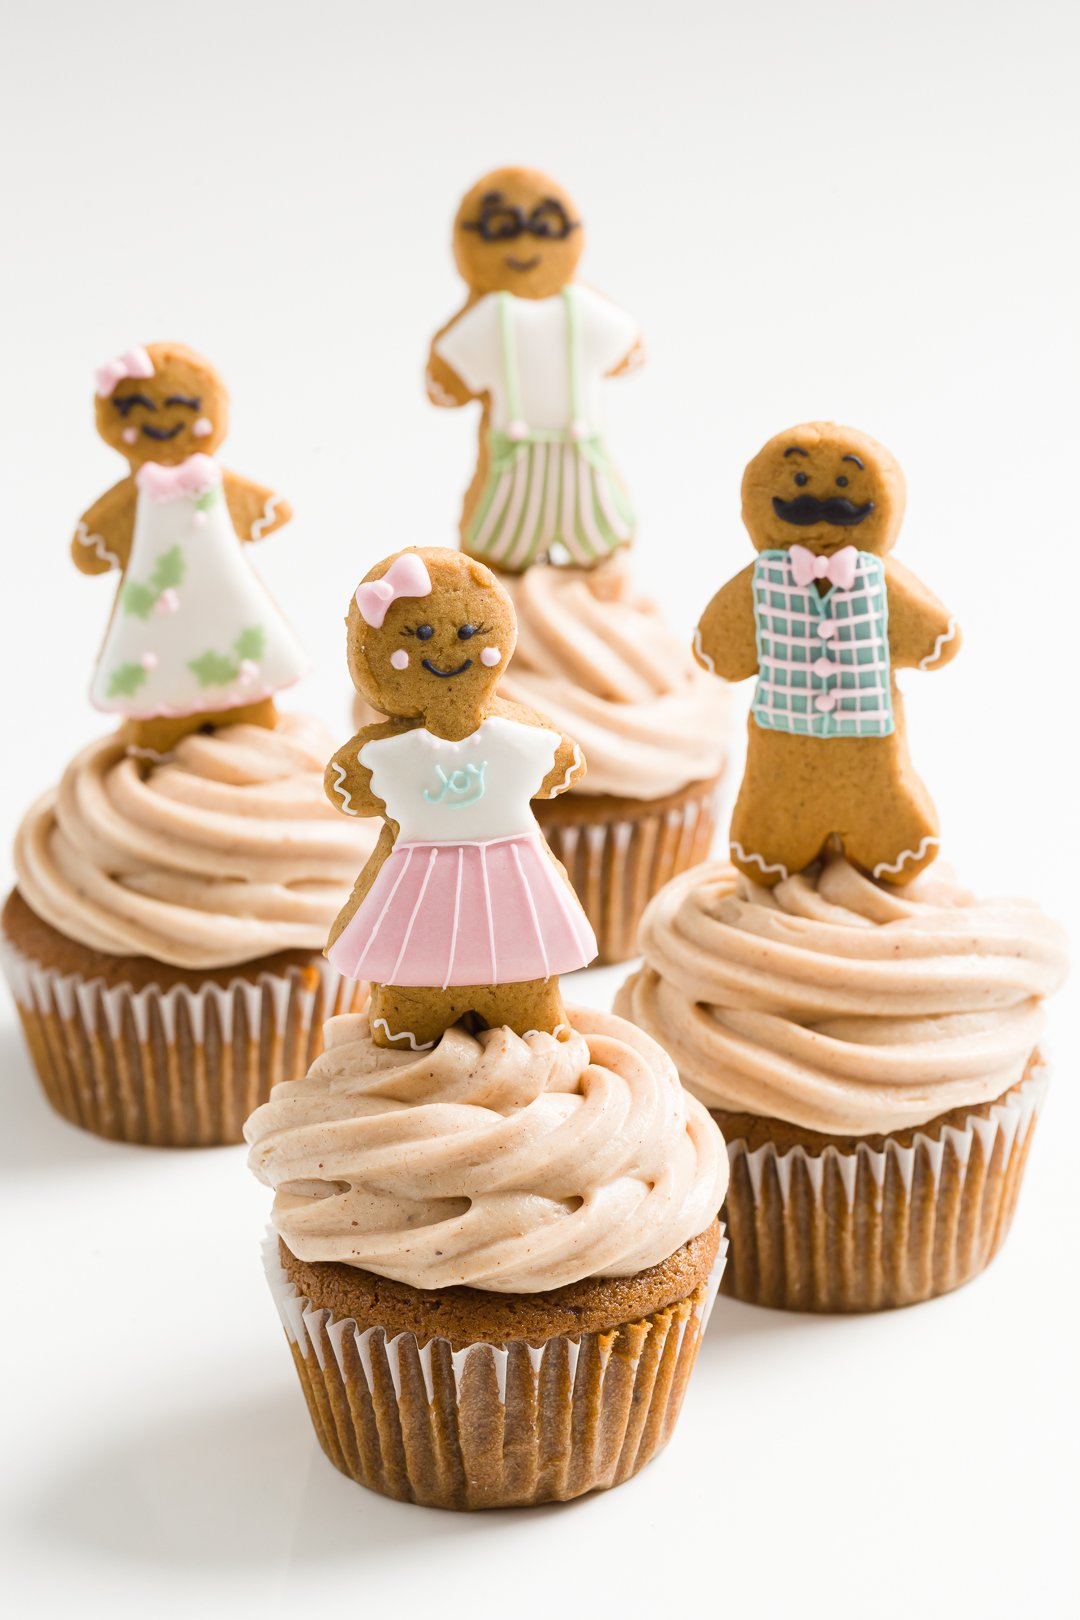 a group of gingerbread cupcakes